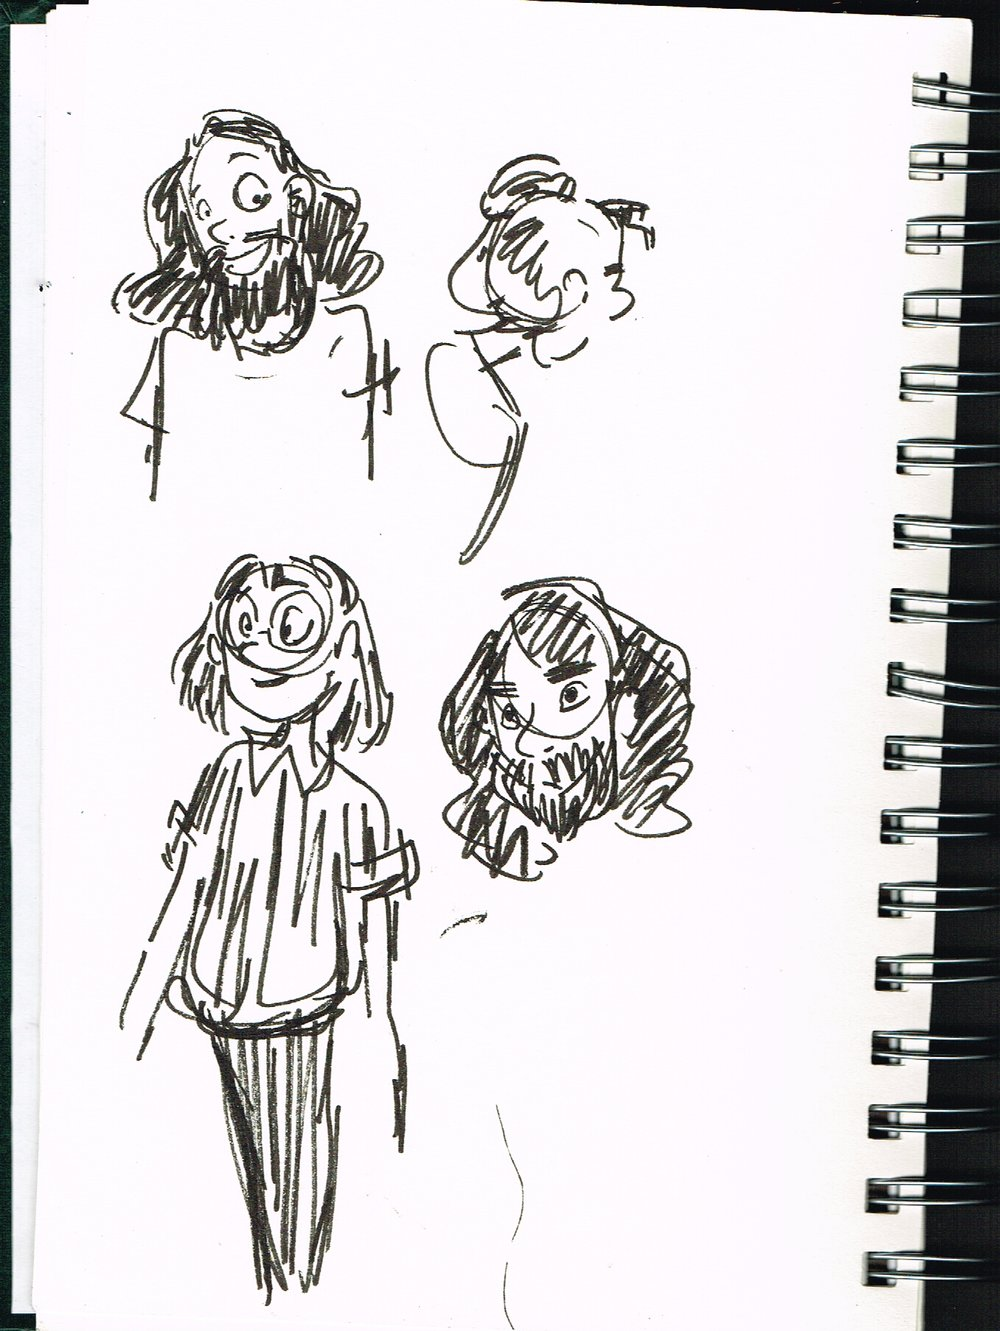 vacation_sketchbook_010.jpg